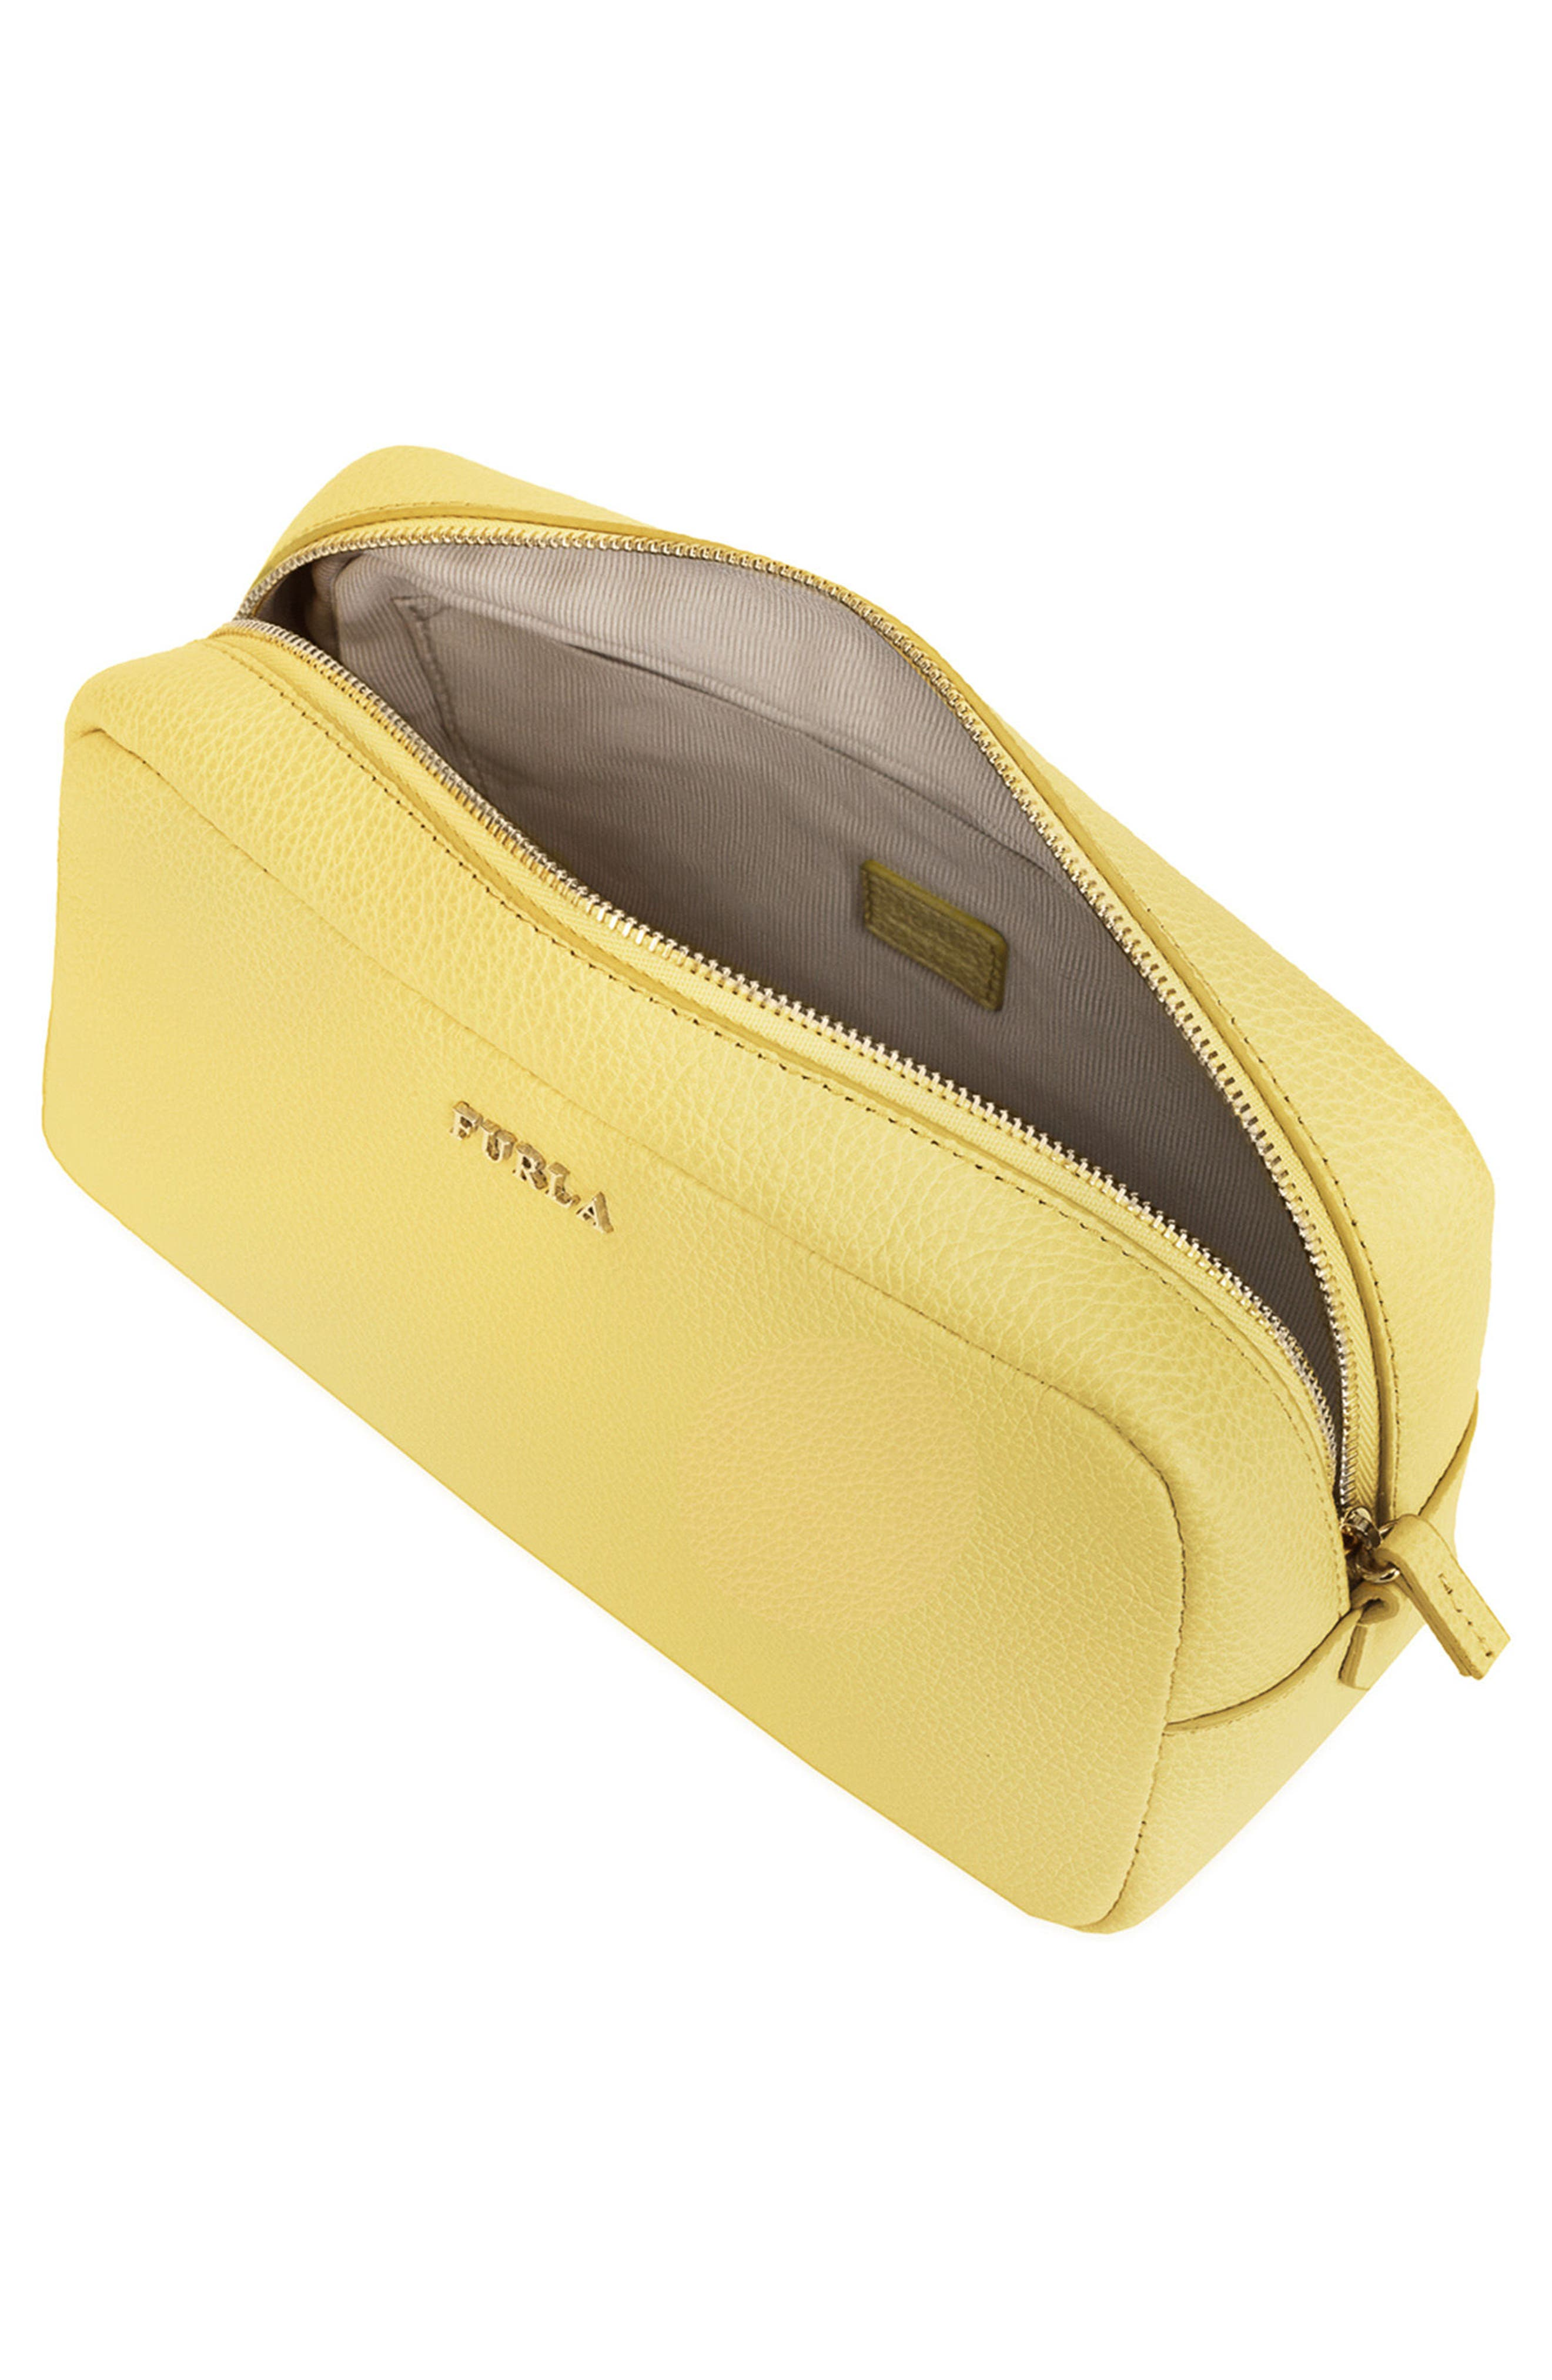 Bloom Extra Large Leather Cosmetic Bag,                             Alternate thumbnail 5, color,